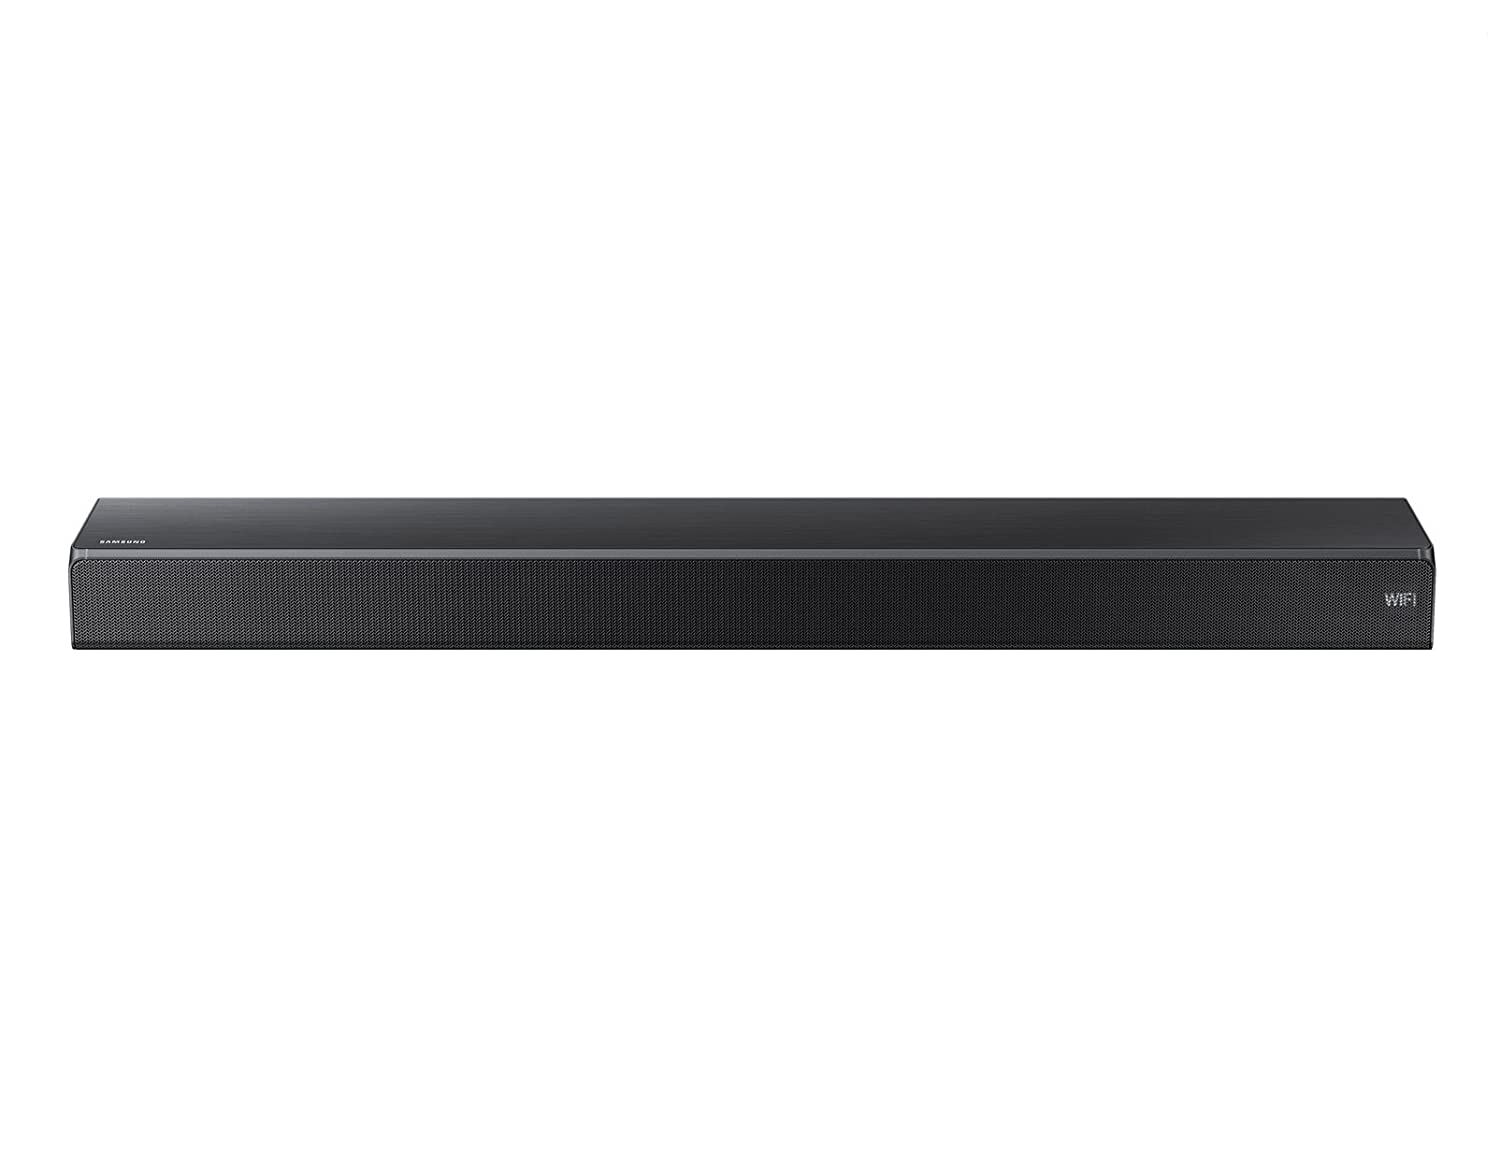 Active subwoofer 320 W Separate Wired /& Wireless Samsung HW-J7501R Soundbar 4.1 Canali DTS 2.0,Dolby Digital 5.1